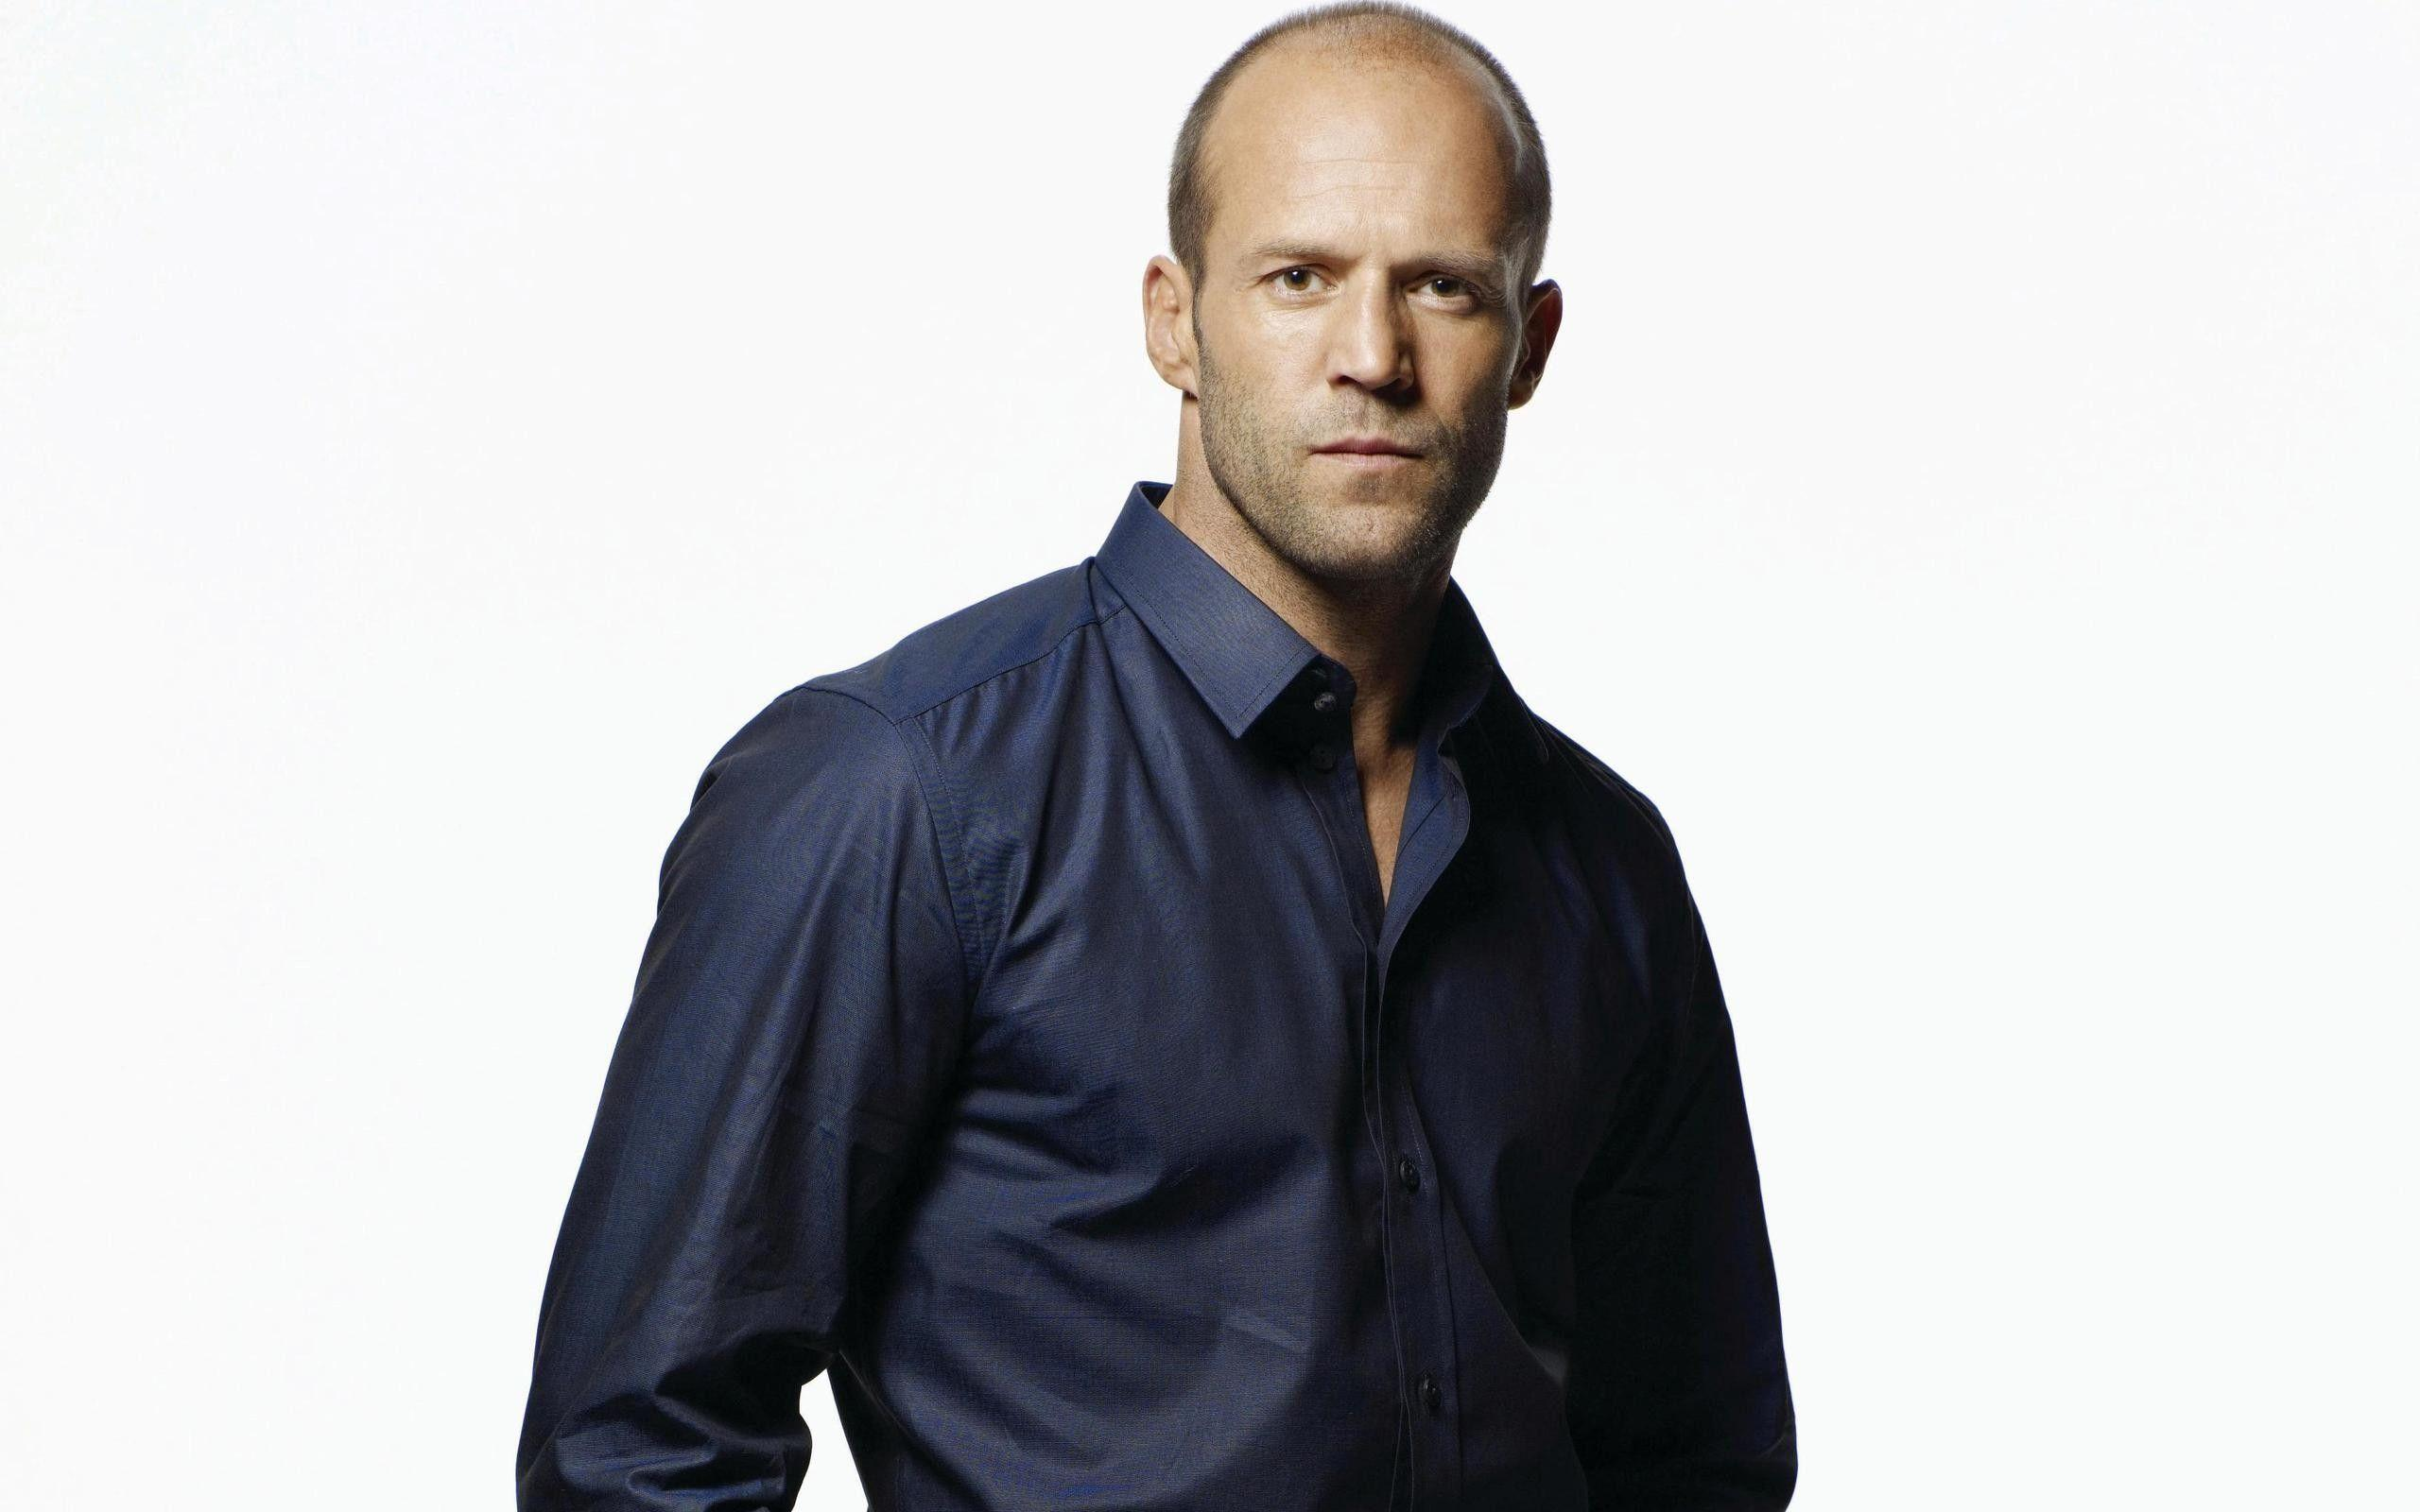 Jason Statham Wallpapers - HD Wallpapers Inn